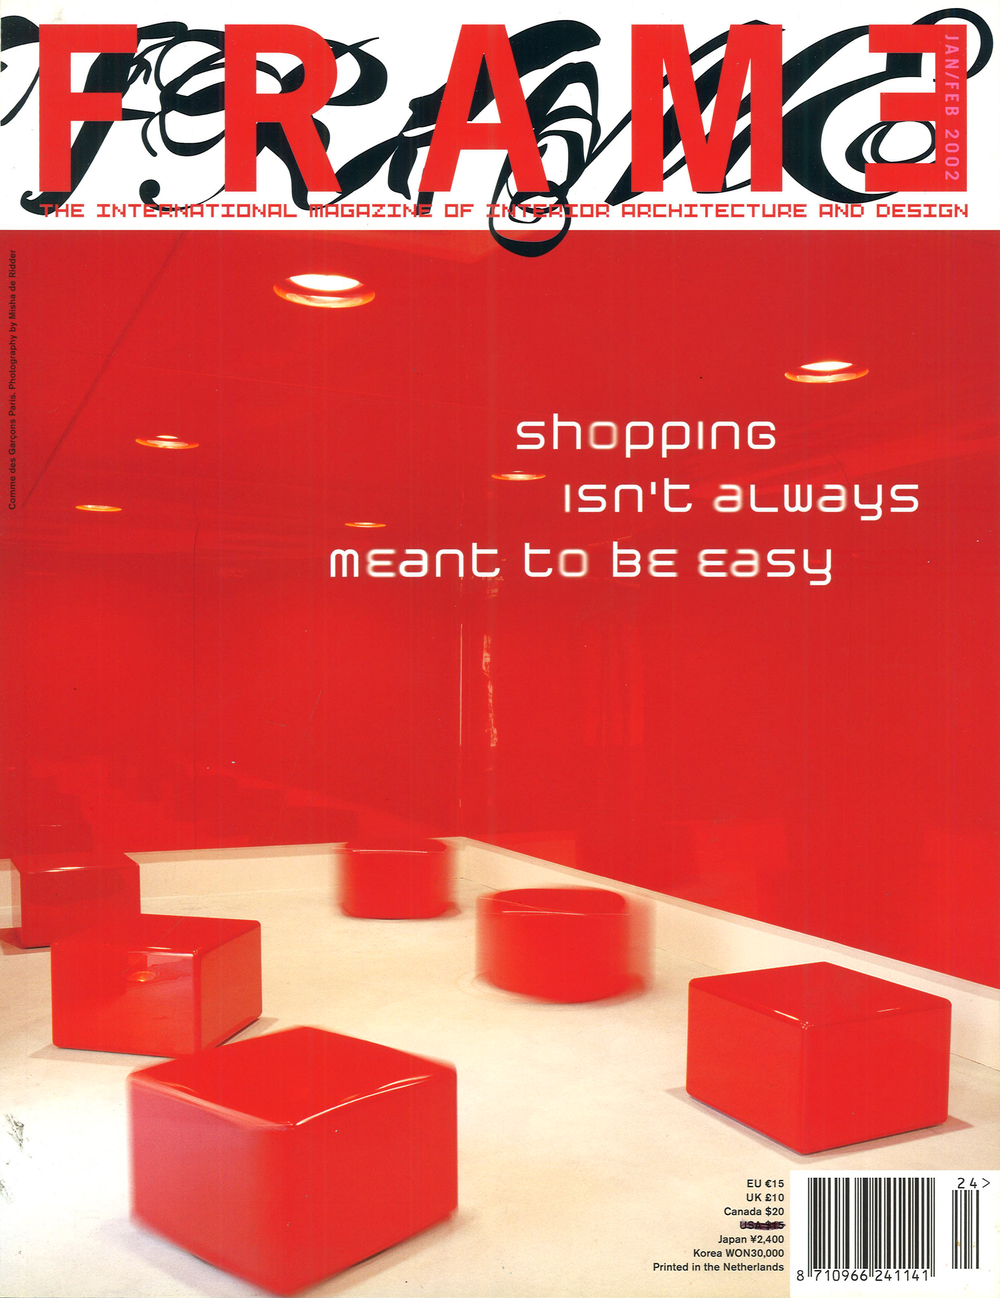 Eyebeam_FRAME_Jan-Feb2002.jpg